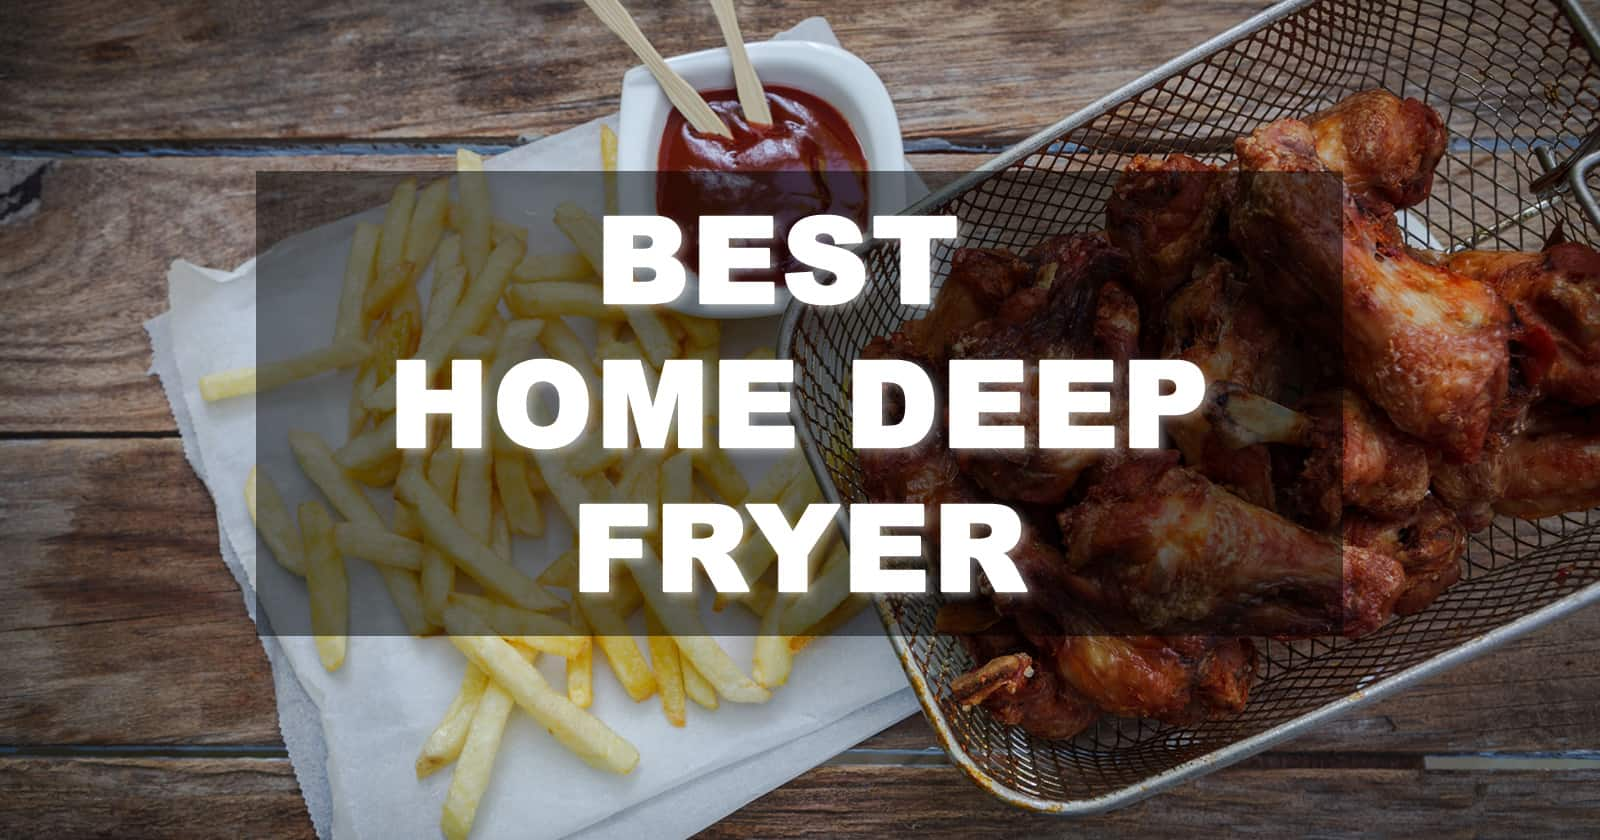 Best home deep fryer